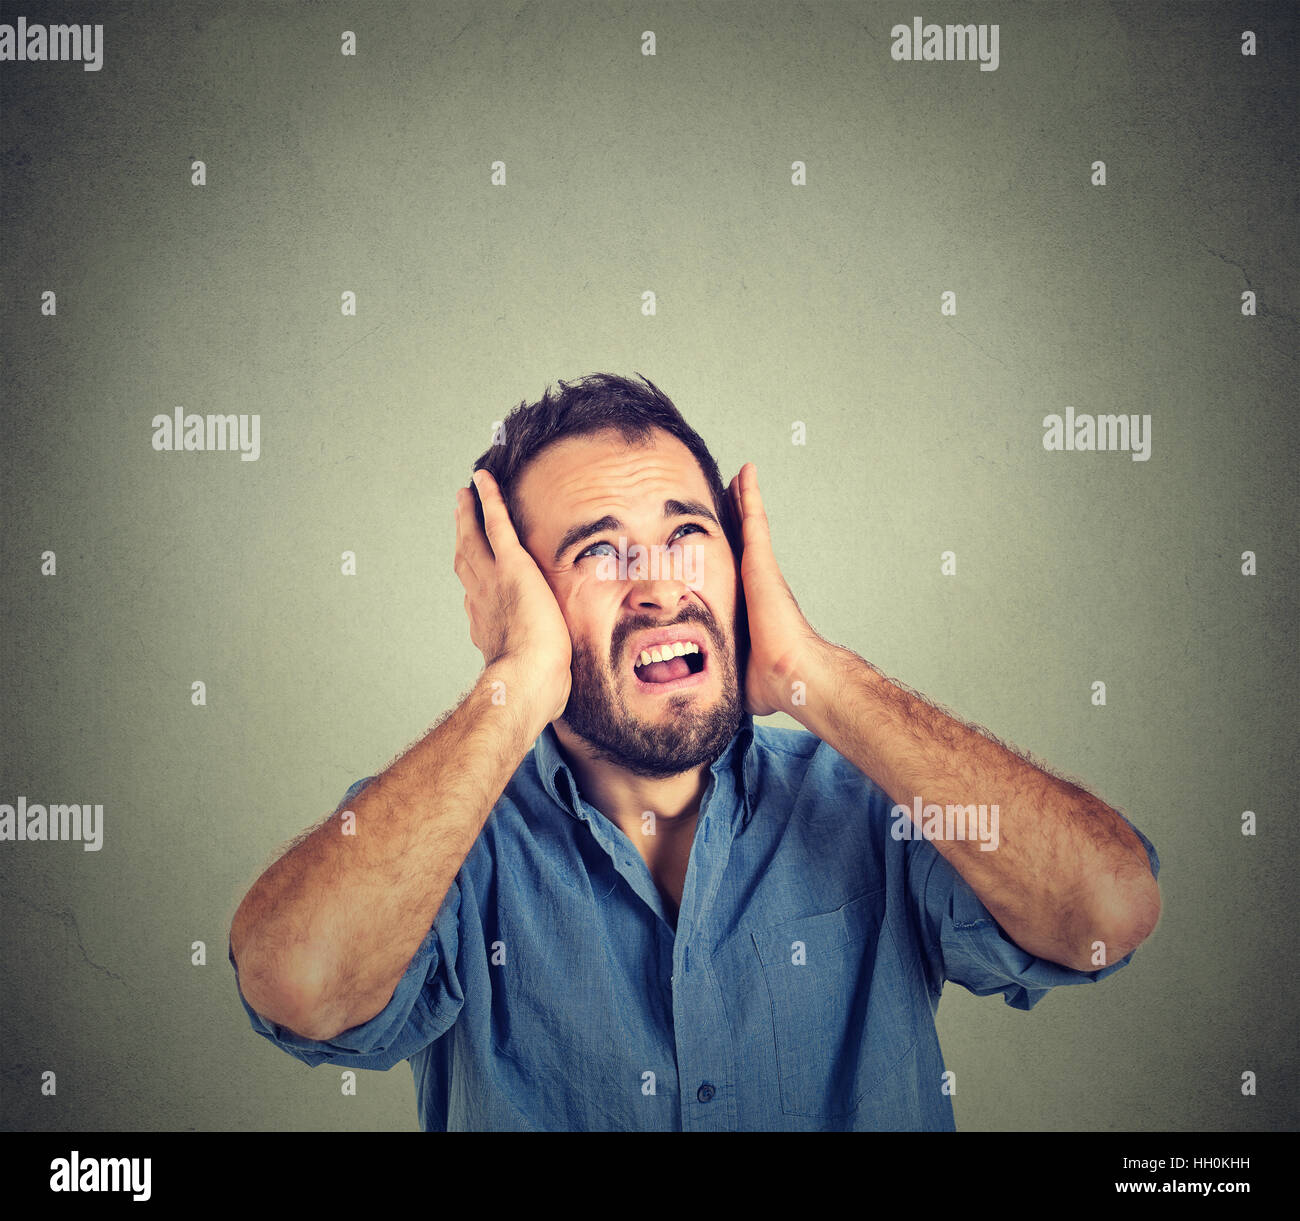 annoyed unhappy, stressed man covering his ears, looking up, stop making loud noise, giving me headache isolated - Stock Image